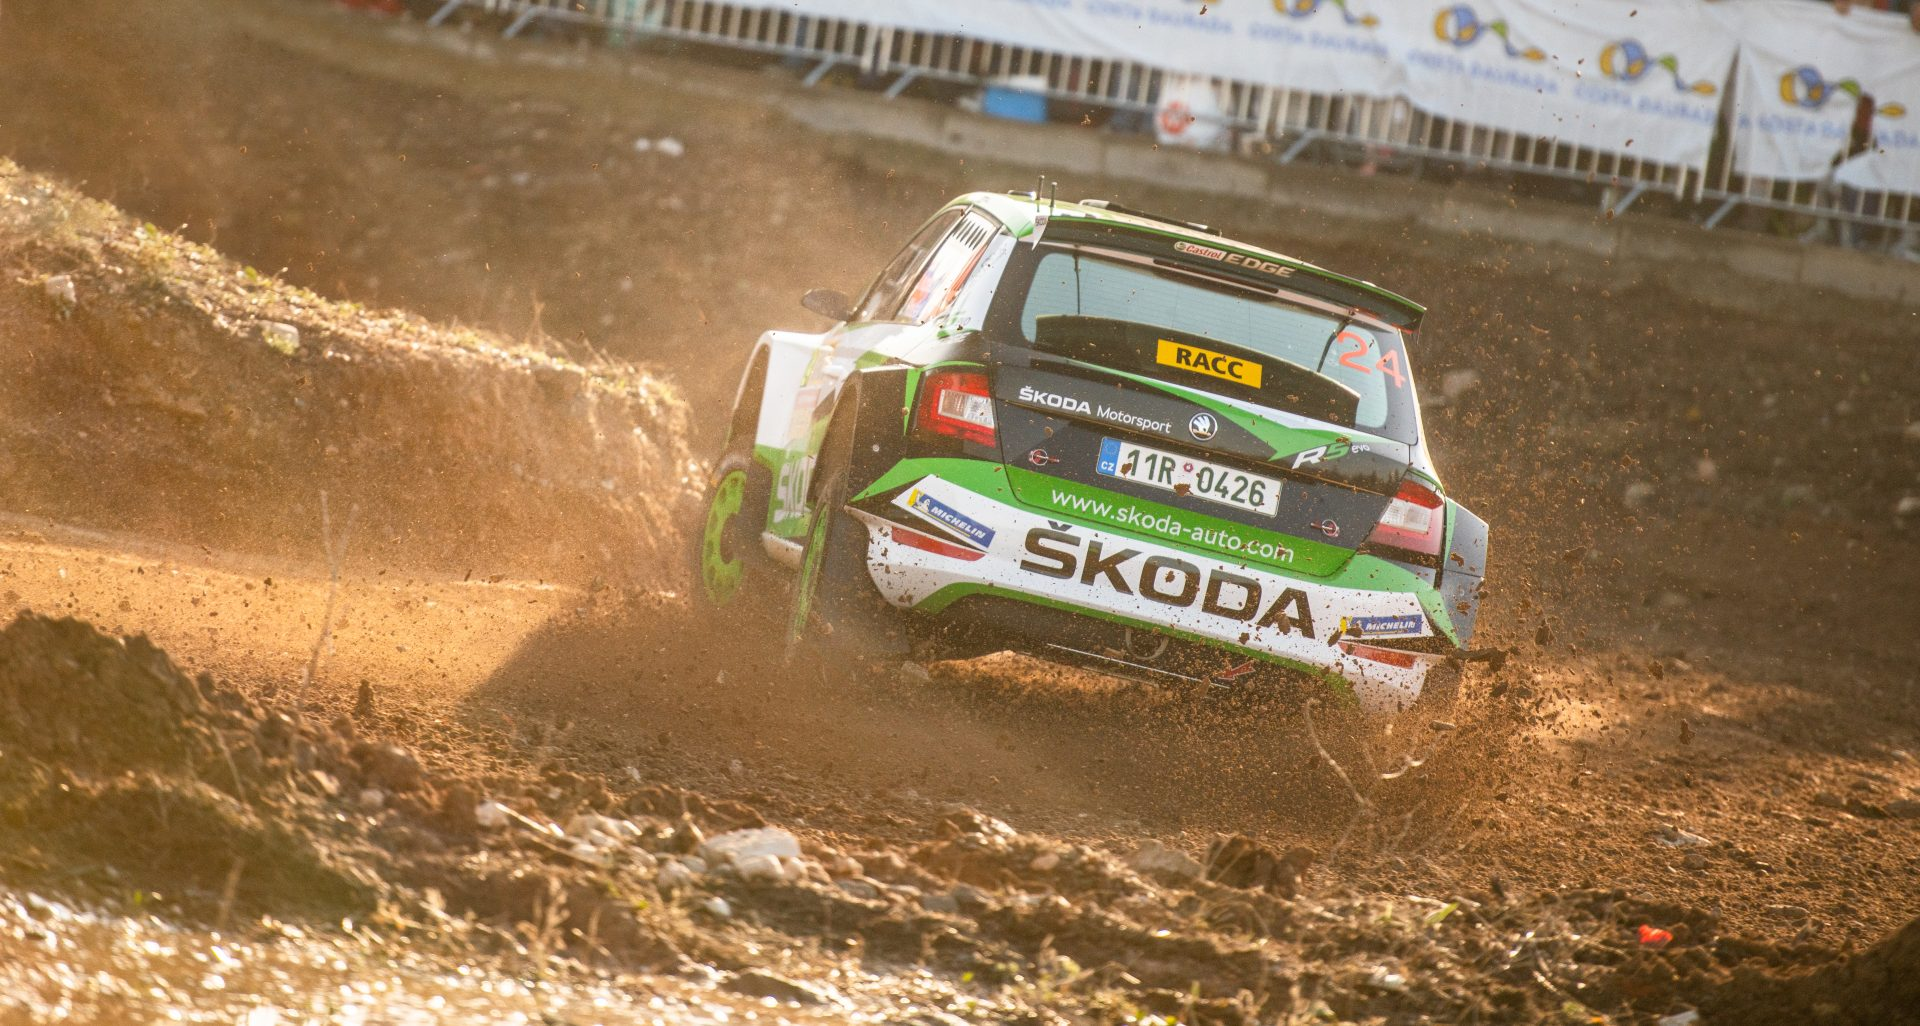 RallyRACC Catalunya: Latest News and Results